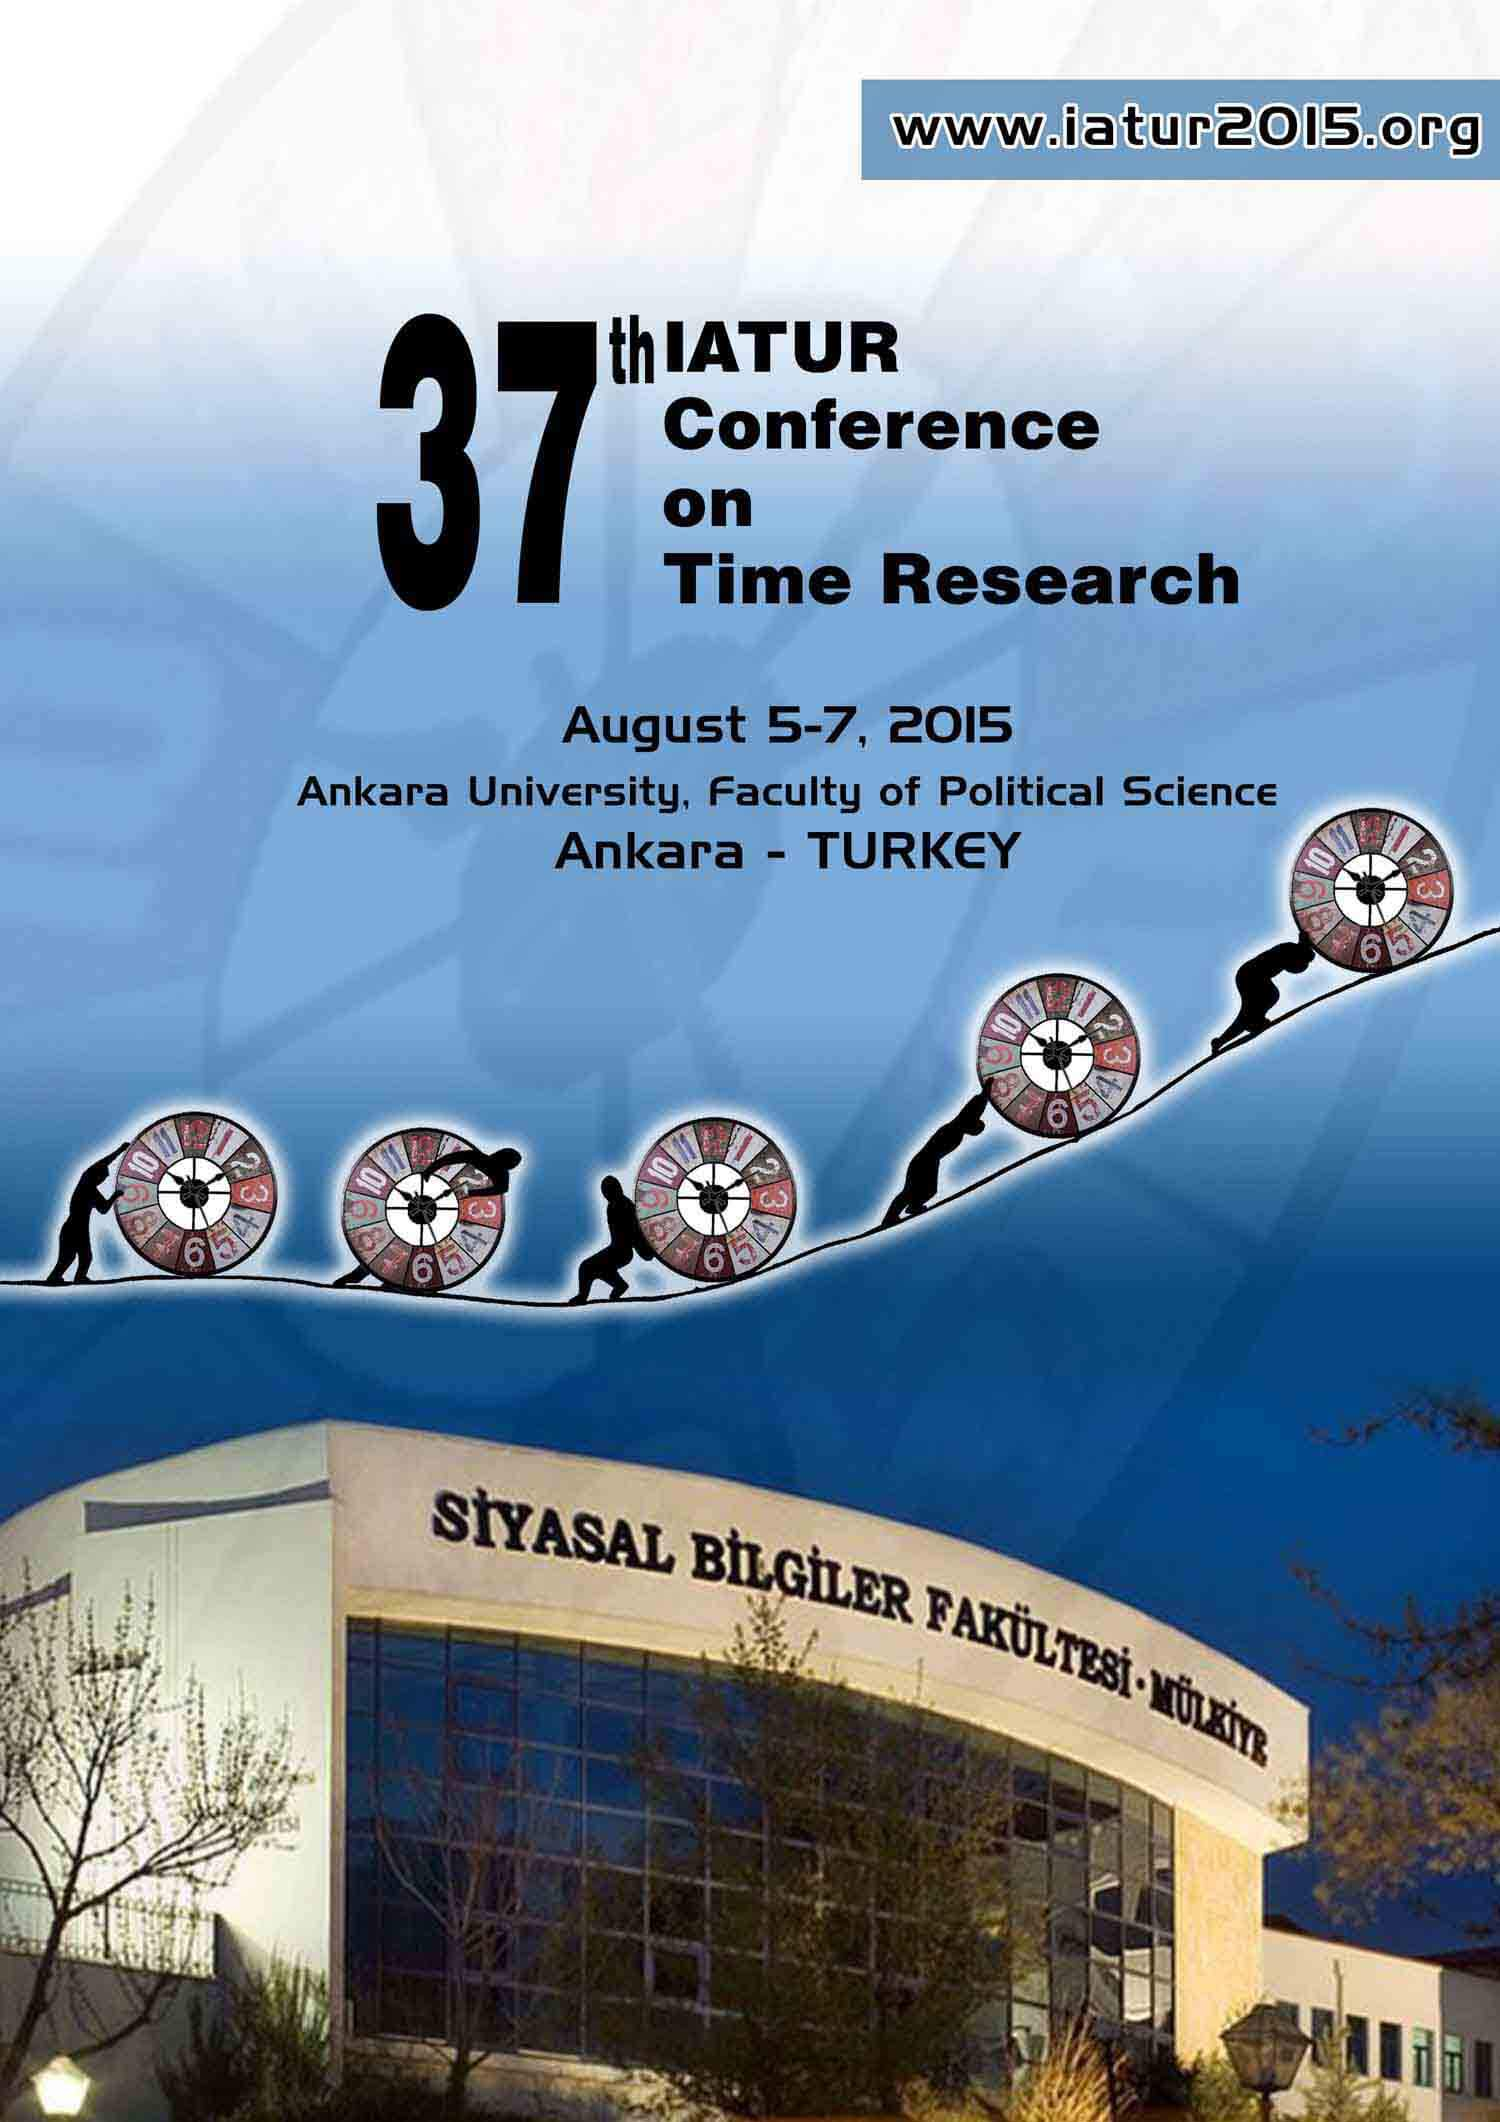 37th IATUR Conference on Time Research